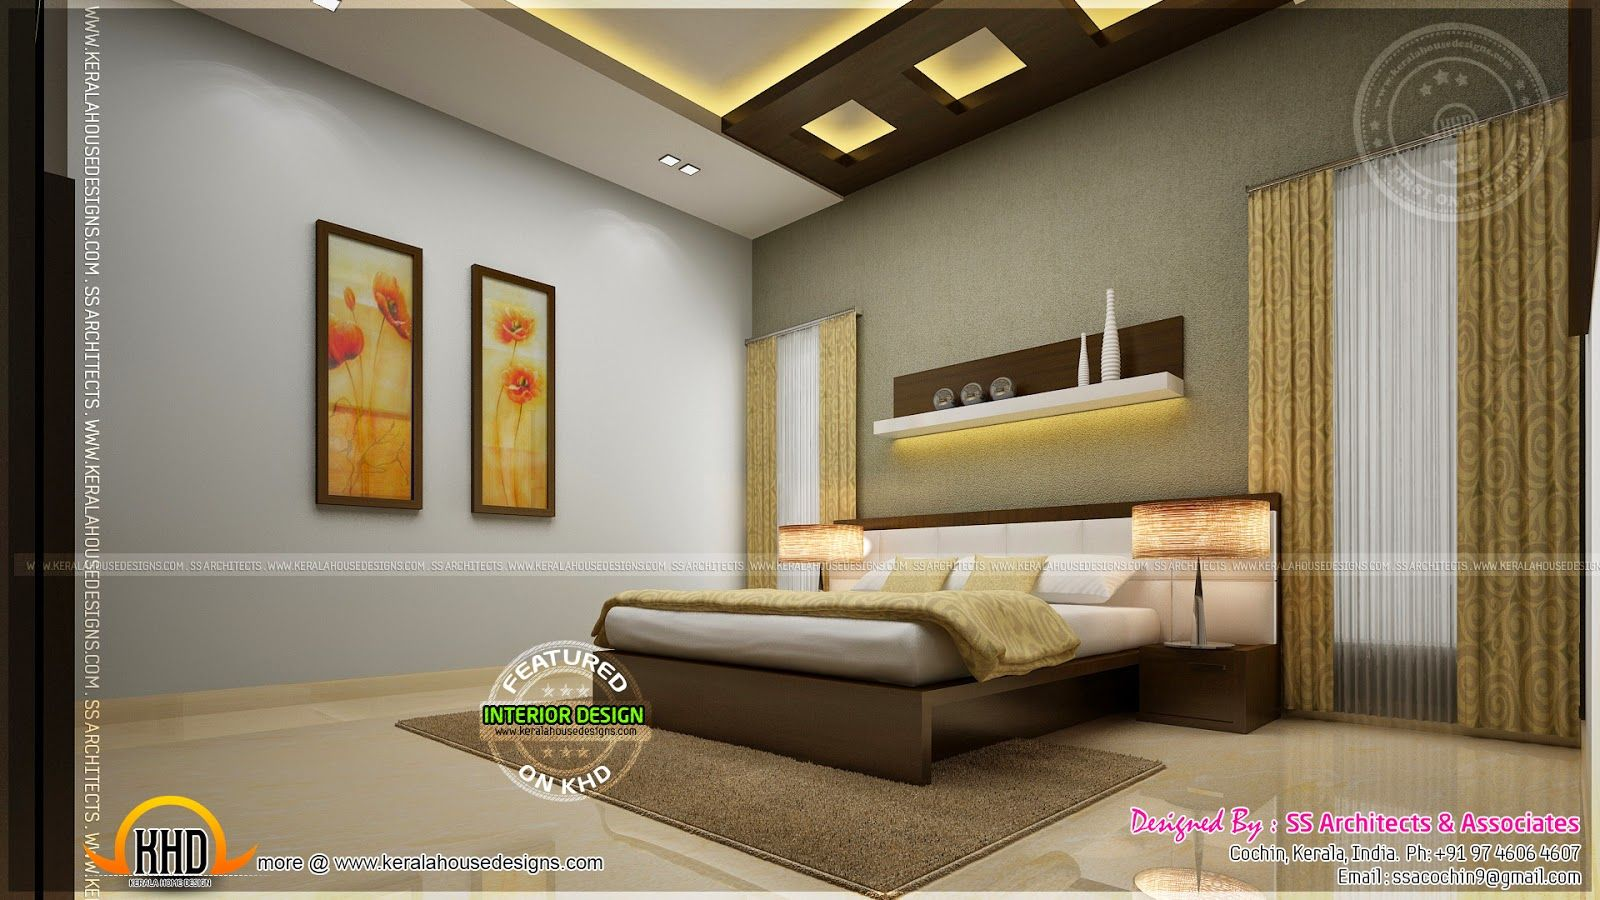 Indian master bedroom interior design google search for Wooden interior design for bedroom